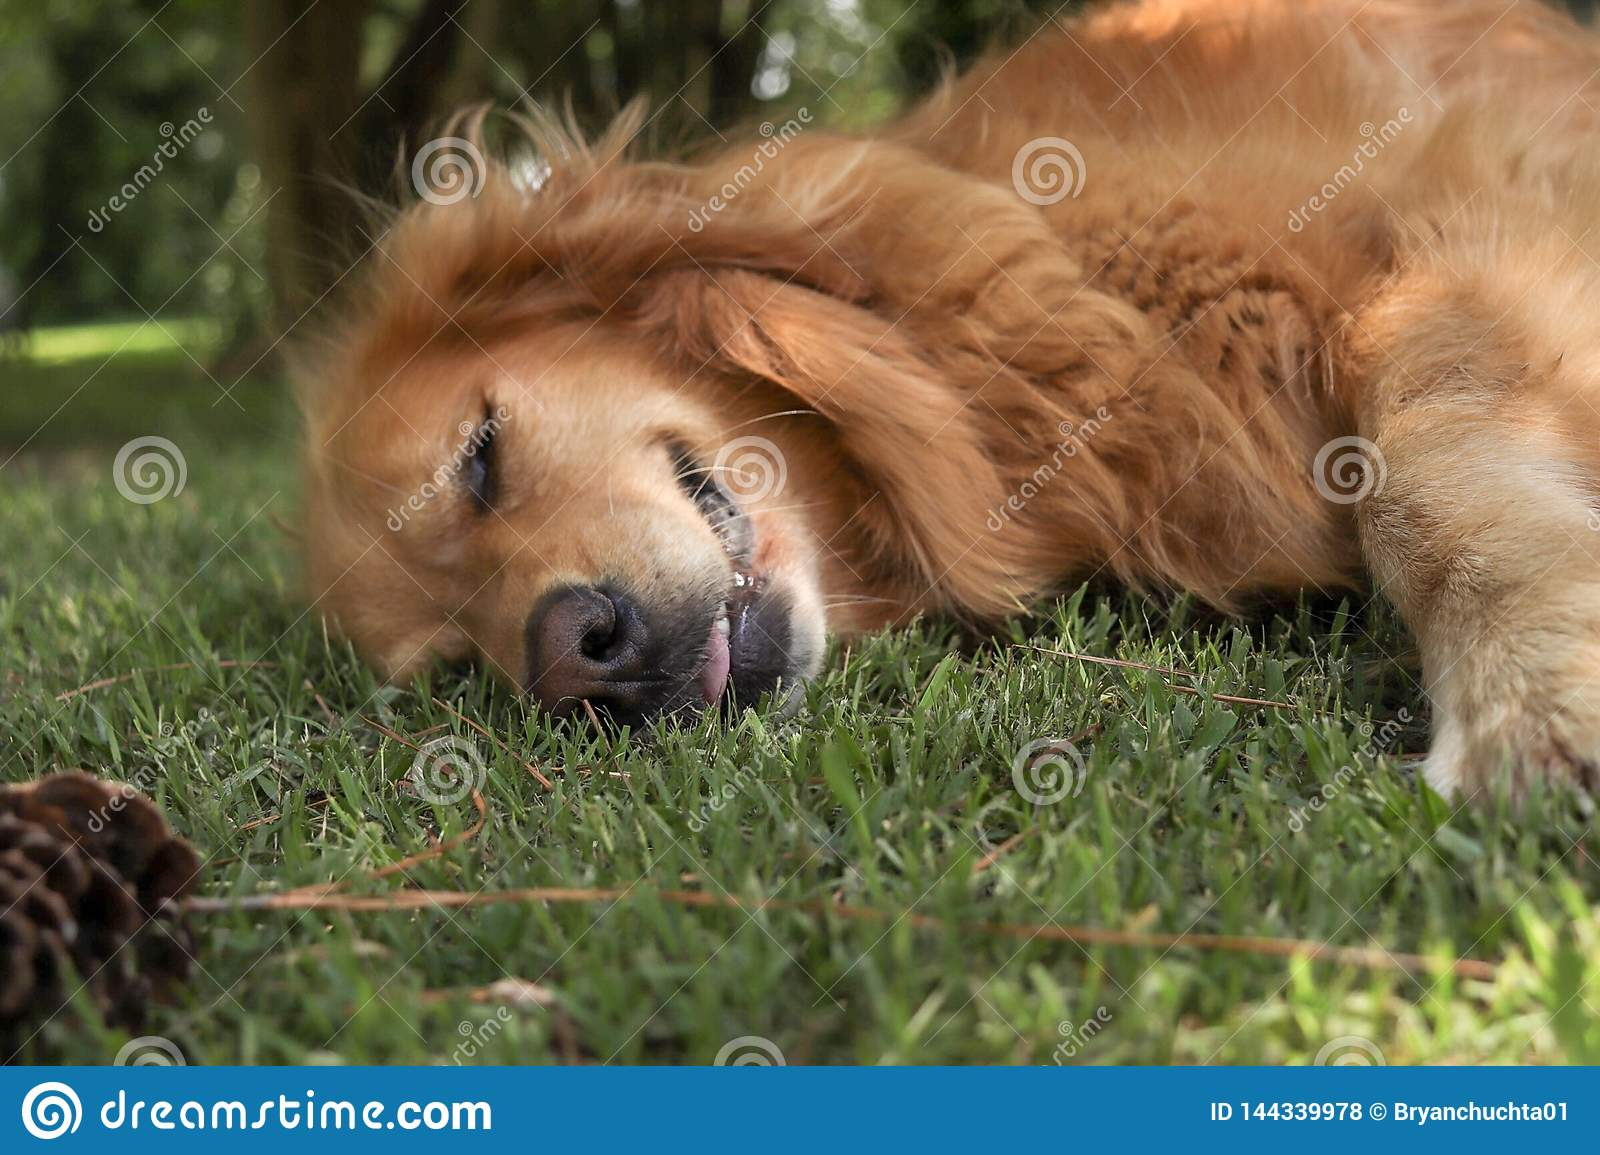 A puppy dog laying in the green grass